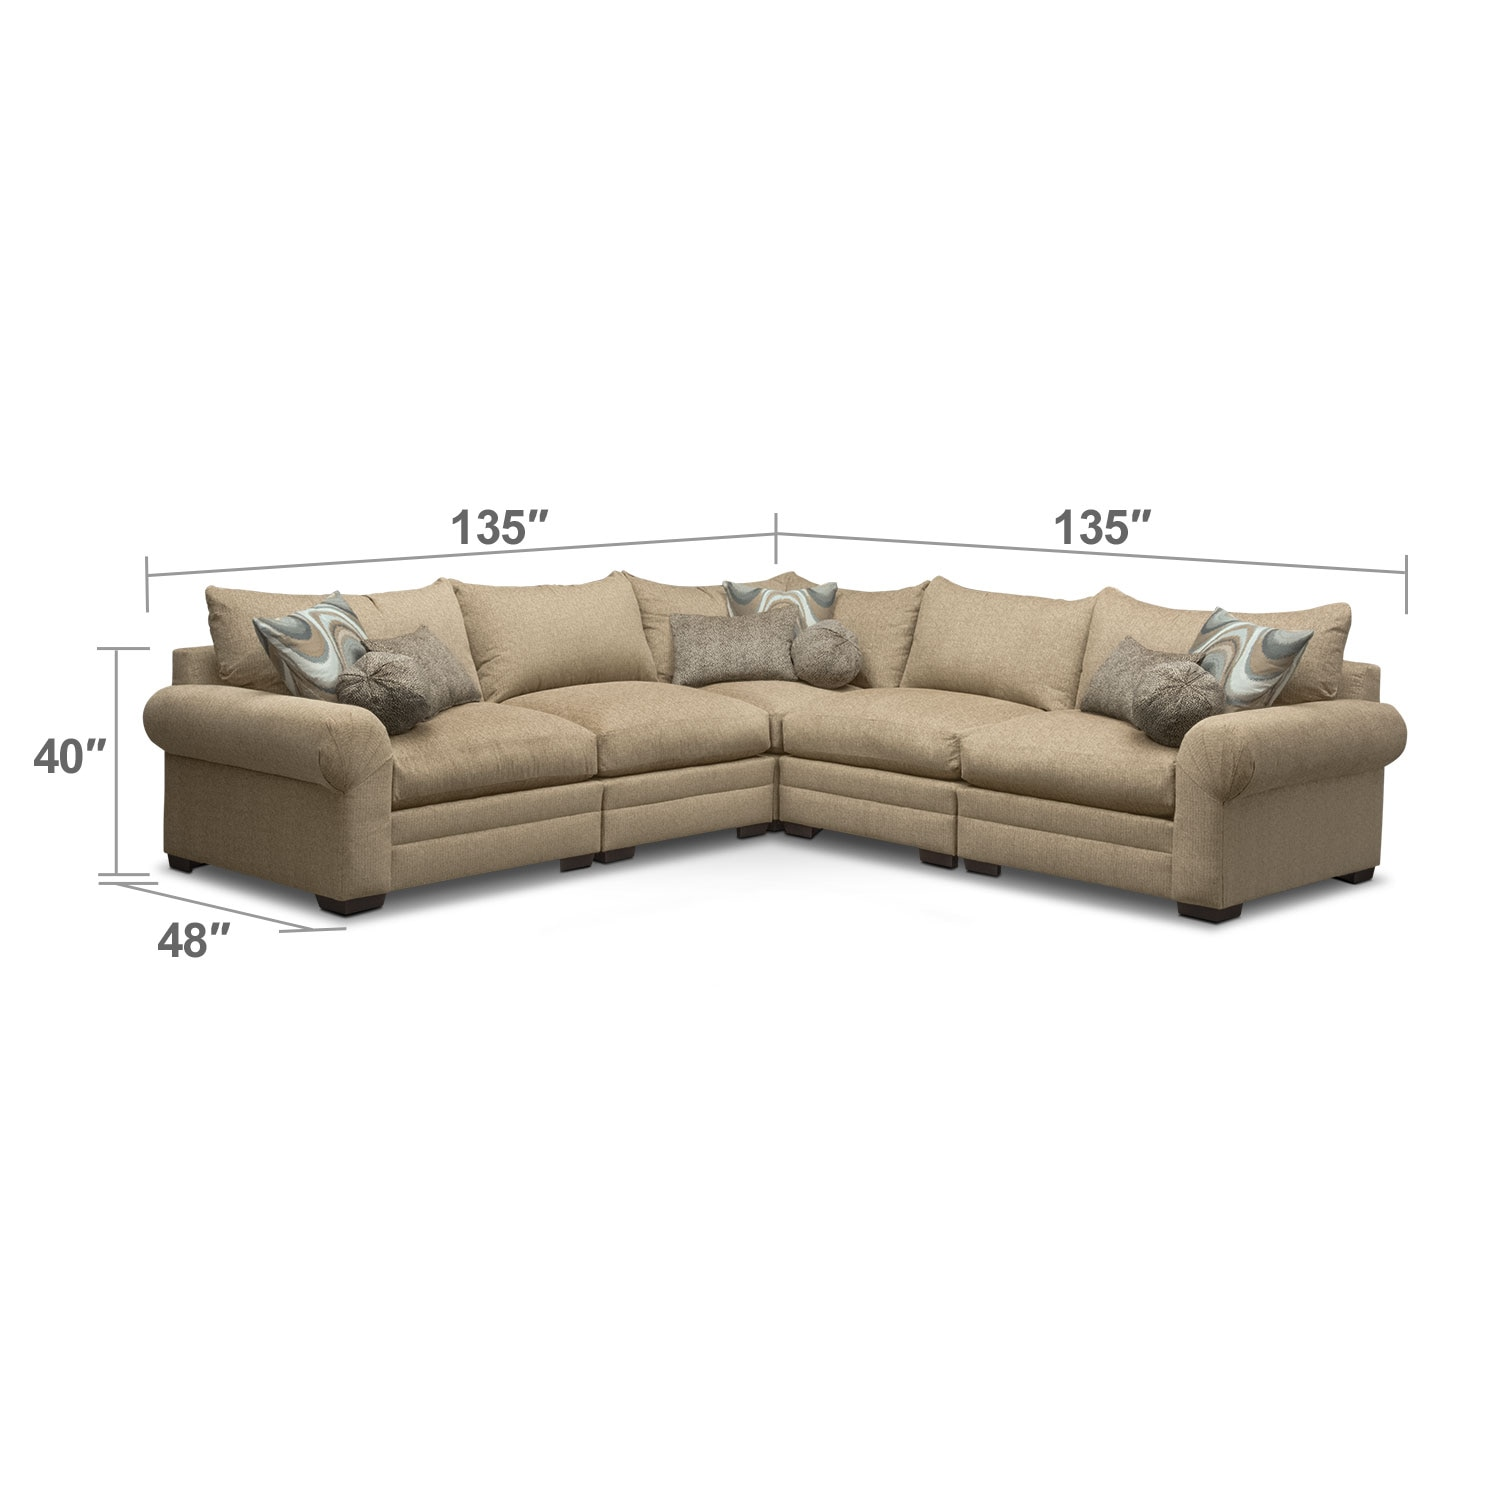 Living Room Furniture - Wilshire 5-Piece Sectional - Taupe